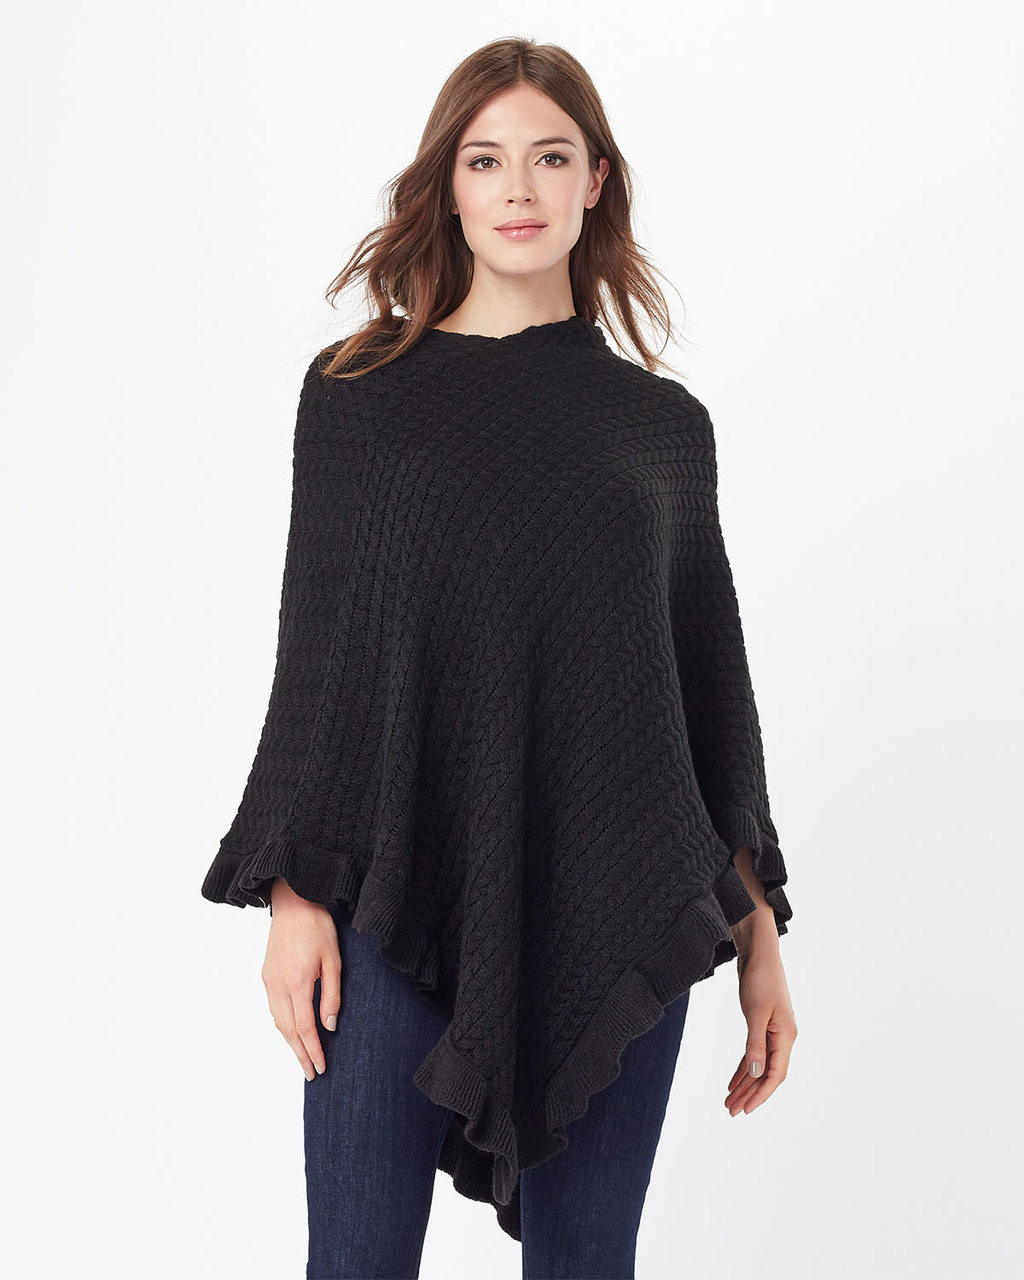 Lou Lou Frill Poncho - pattern: plain; length: below the bottom; collar: round collar/collarless; fit: loose; style: poncho/blanket; predominant colour: black; occasions: casual; fibres: acrylic - 100%; sleeve length: long sleeve; texture group: knits/crochet; collar break: high; pattern type: fabric; sleeve style: cape/poncho sleeve; season: s/s 2016; wardrobe: highlight